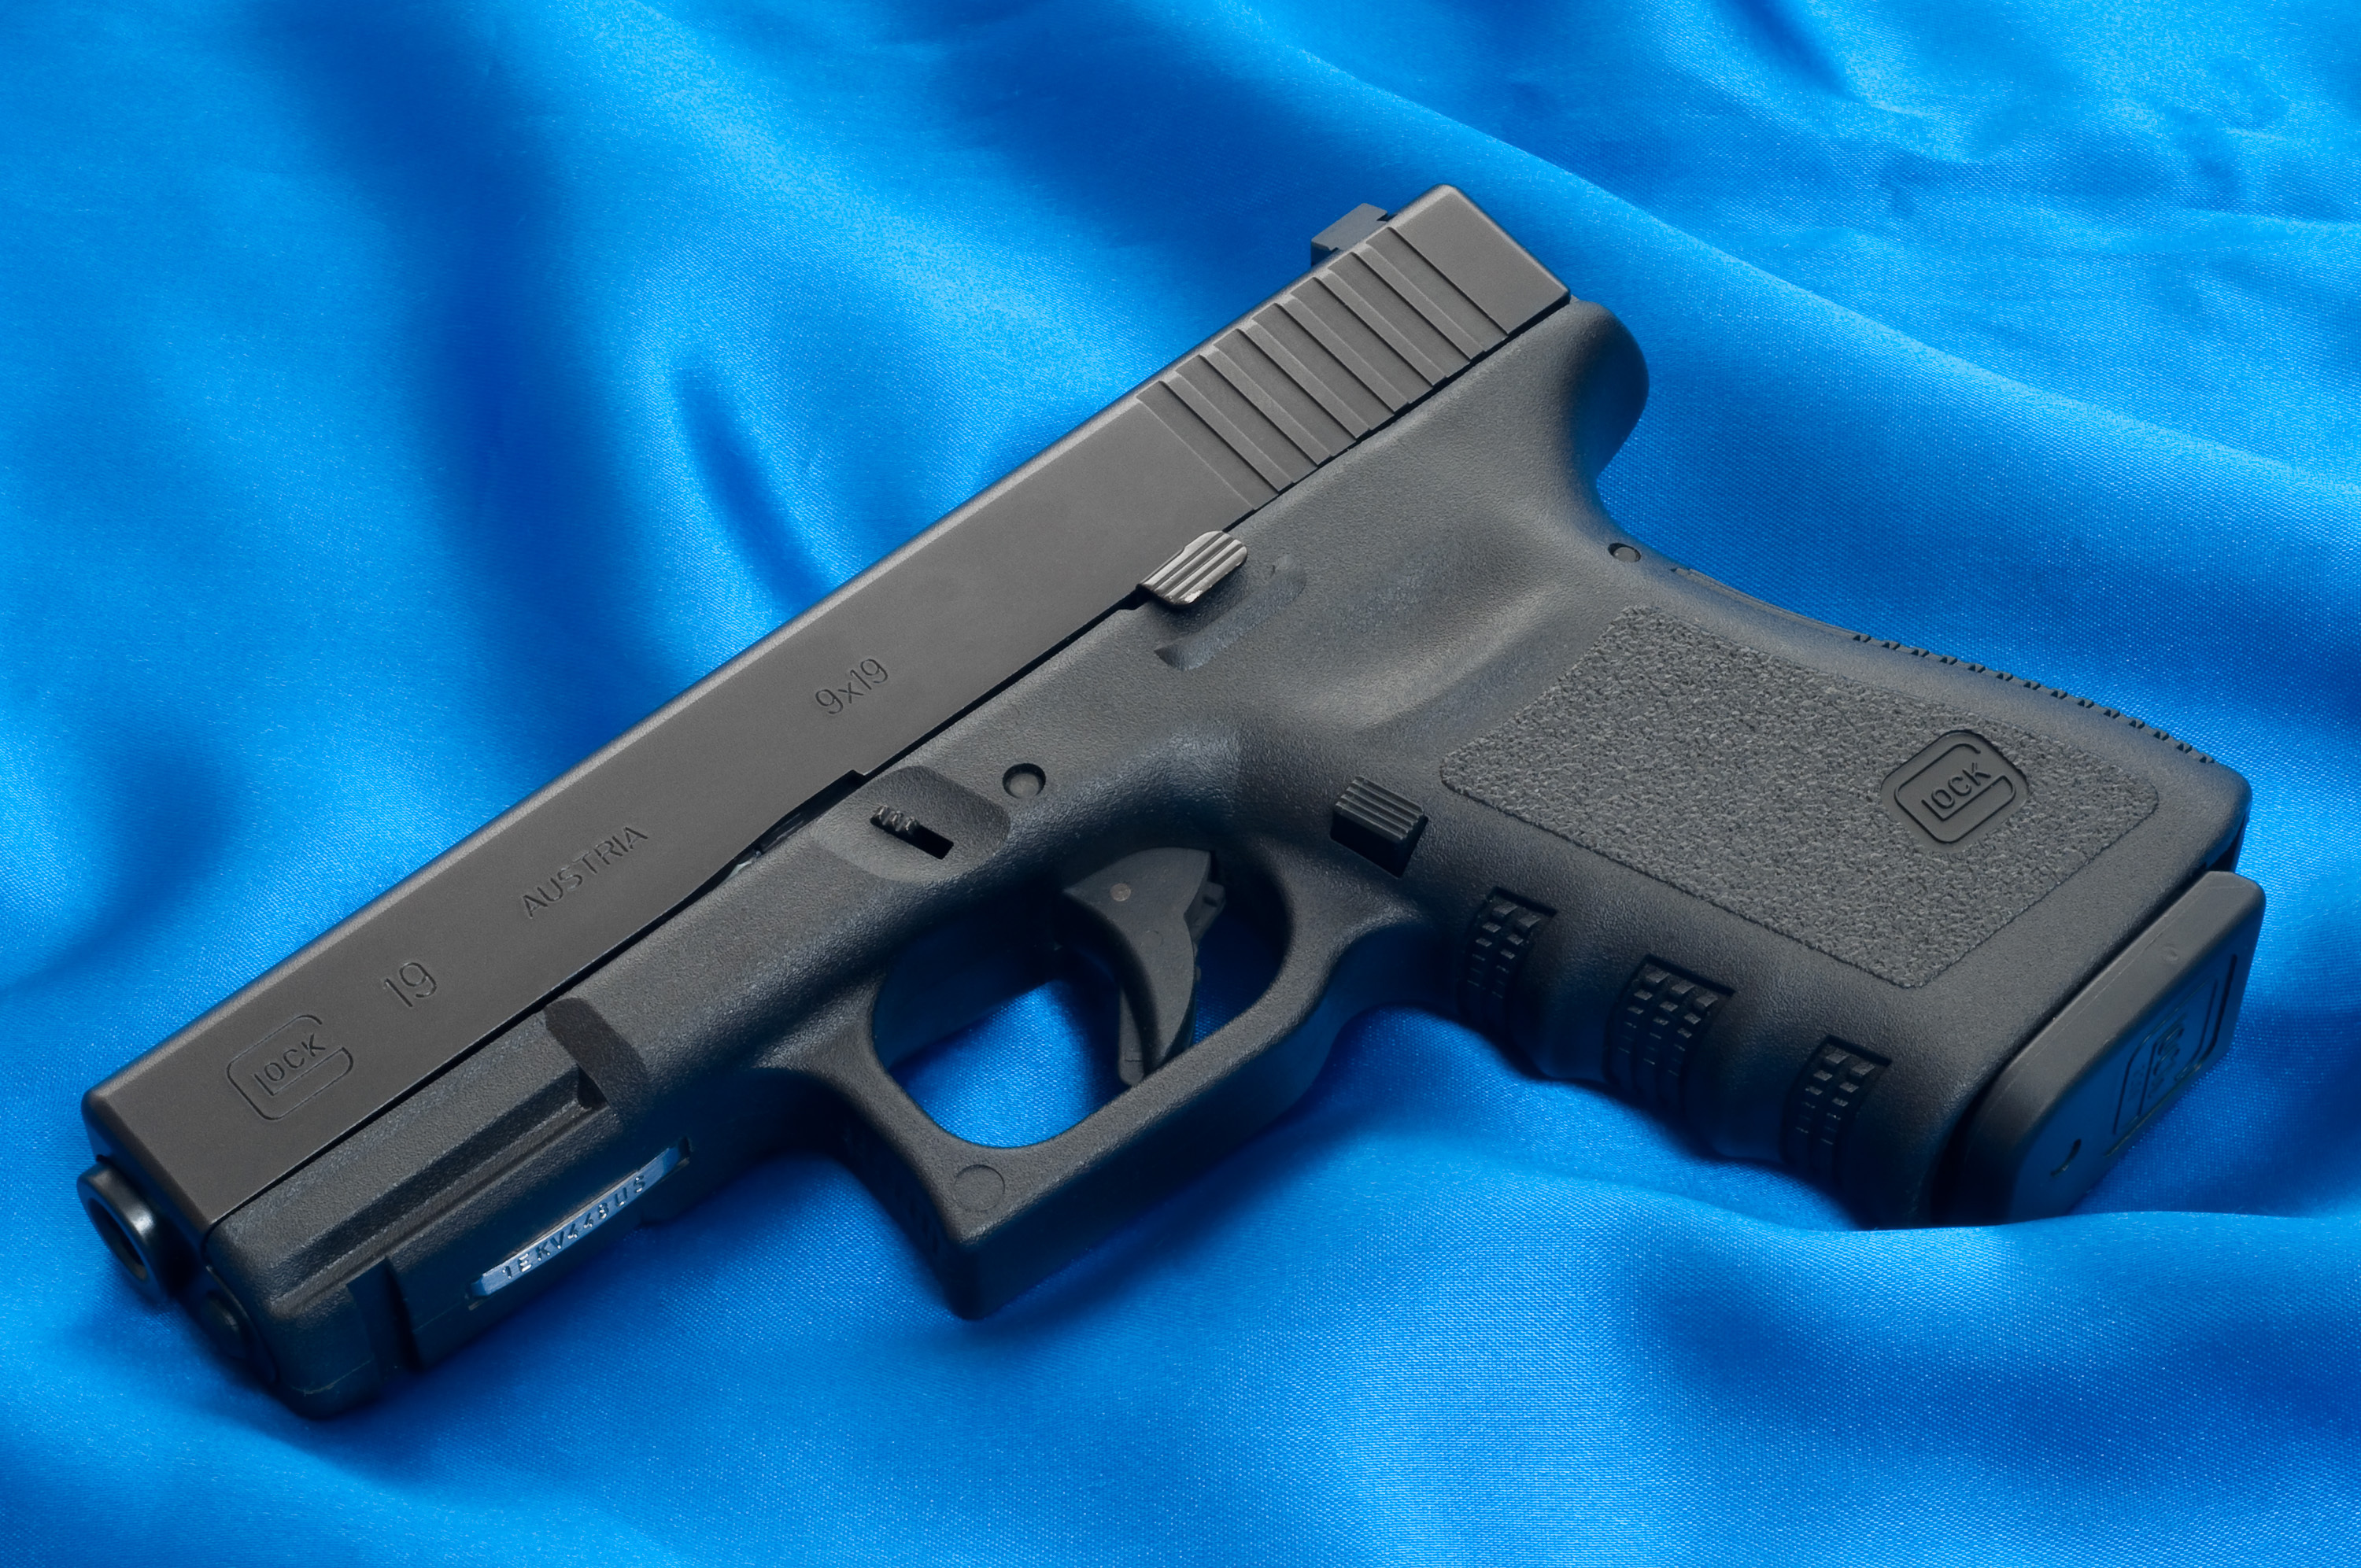 glock 19 wallpaper wallpapersafari